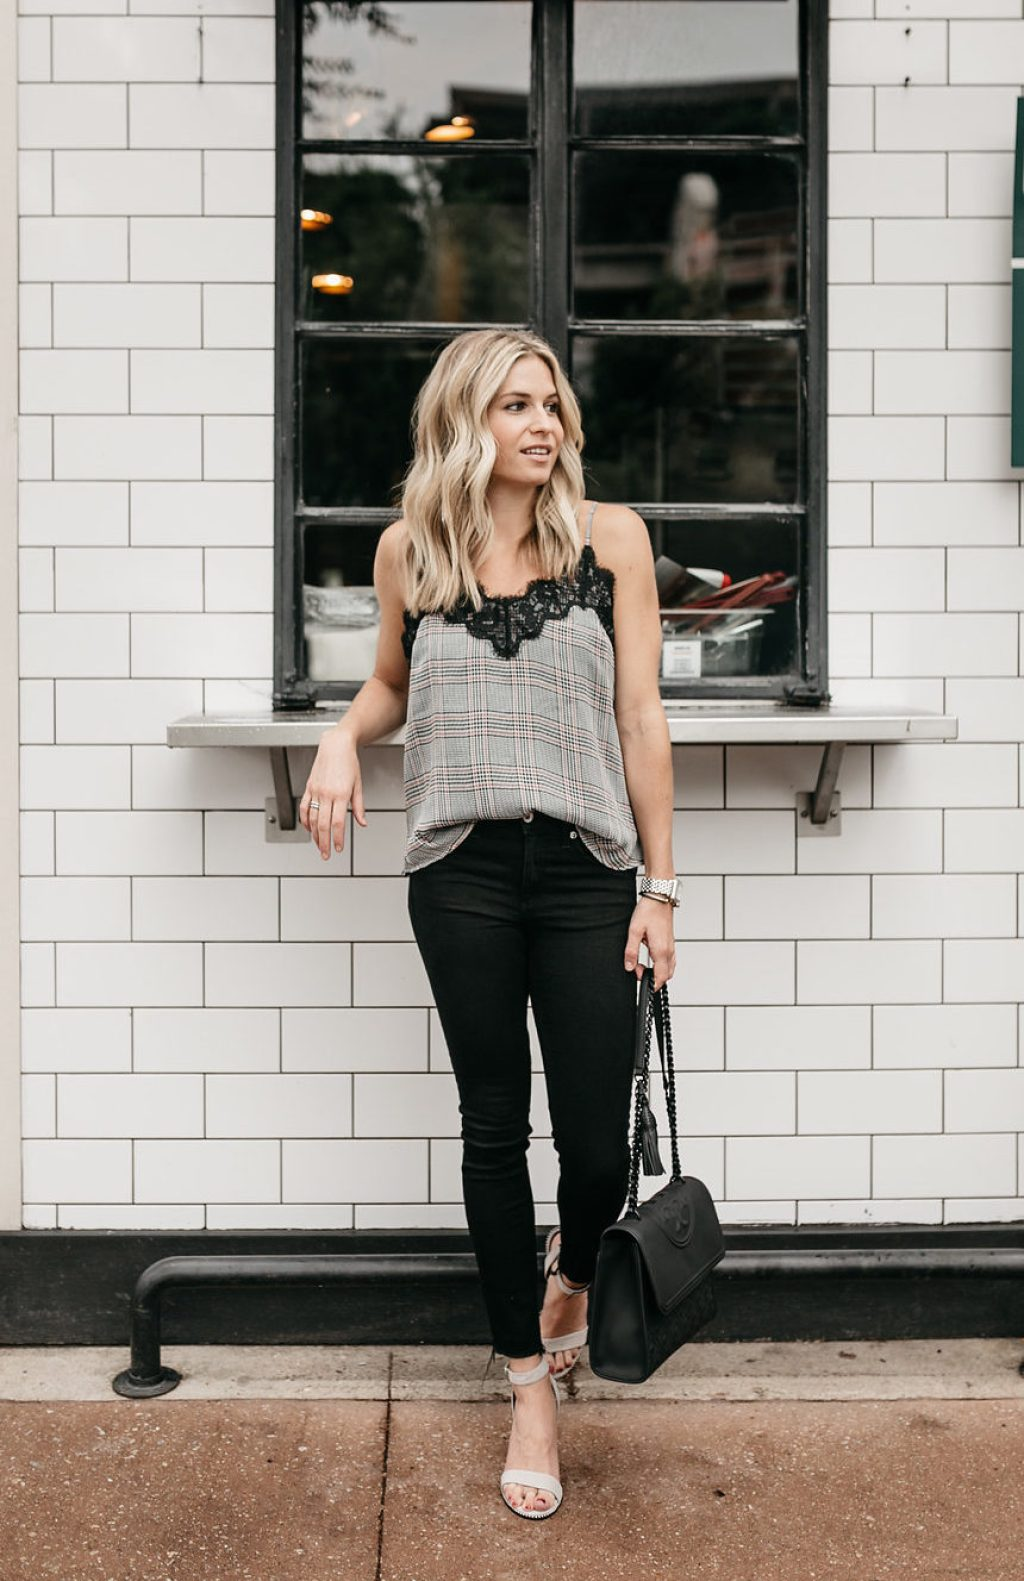 How To Wear Plaid For Fall - One Small Blonde